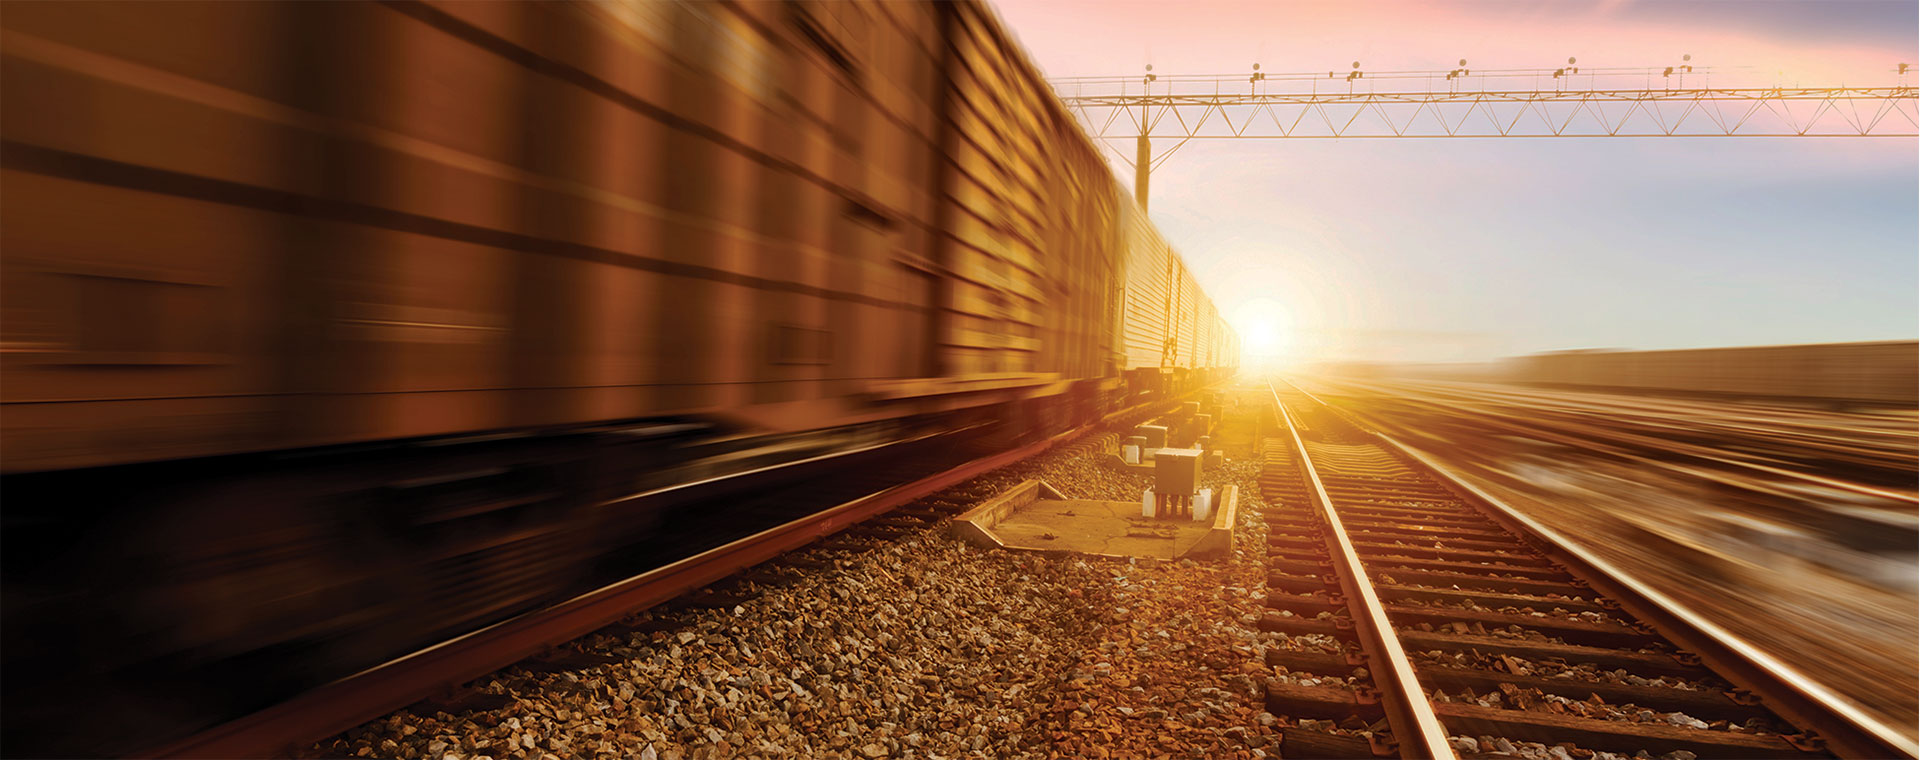 Train on a track with sun setting in the background